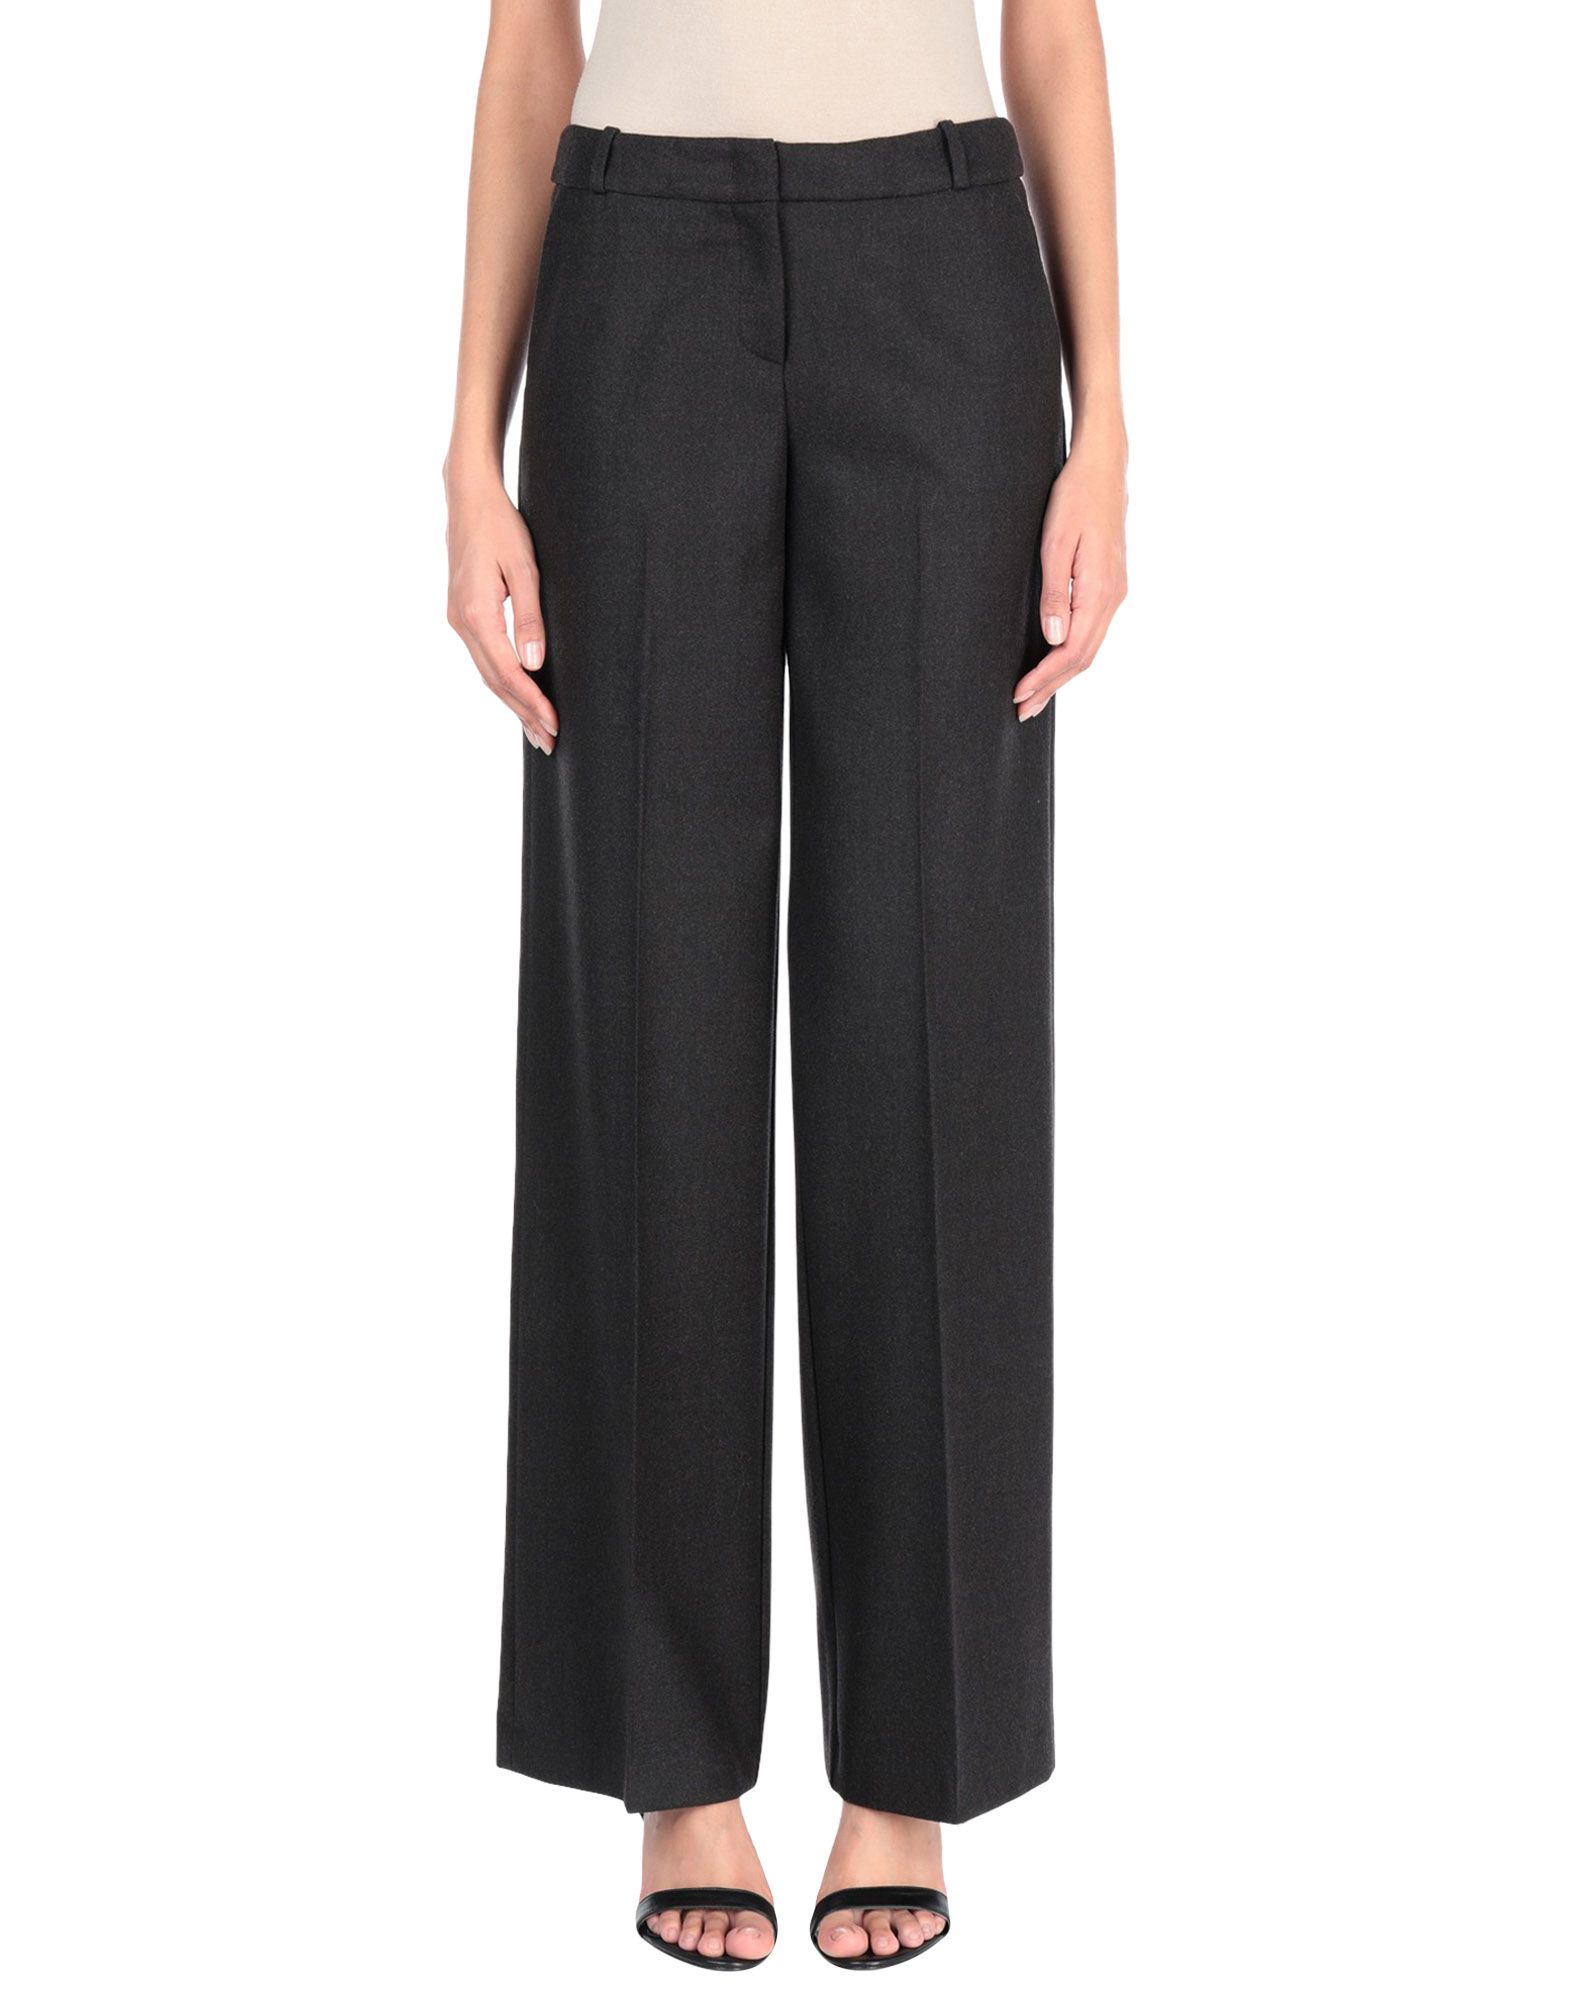 CARRIE | CARRIE Casual Pants 13273533 | Goxip